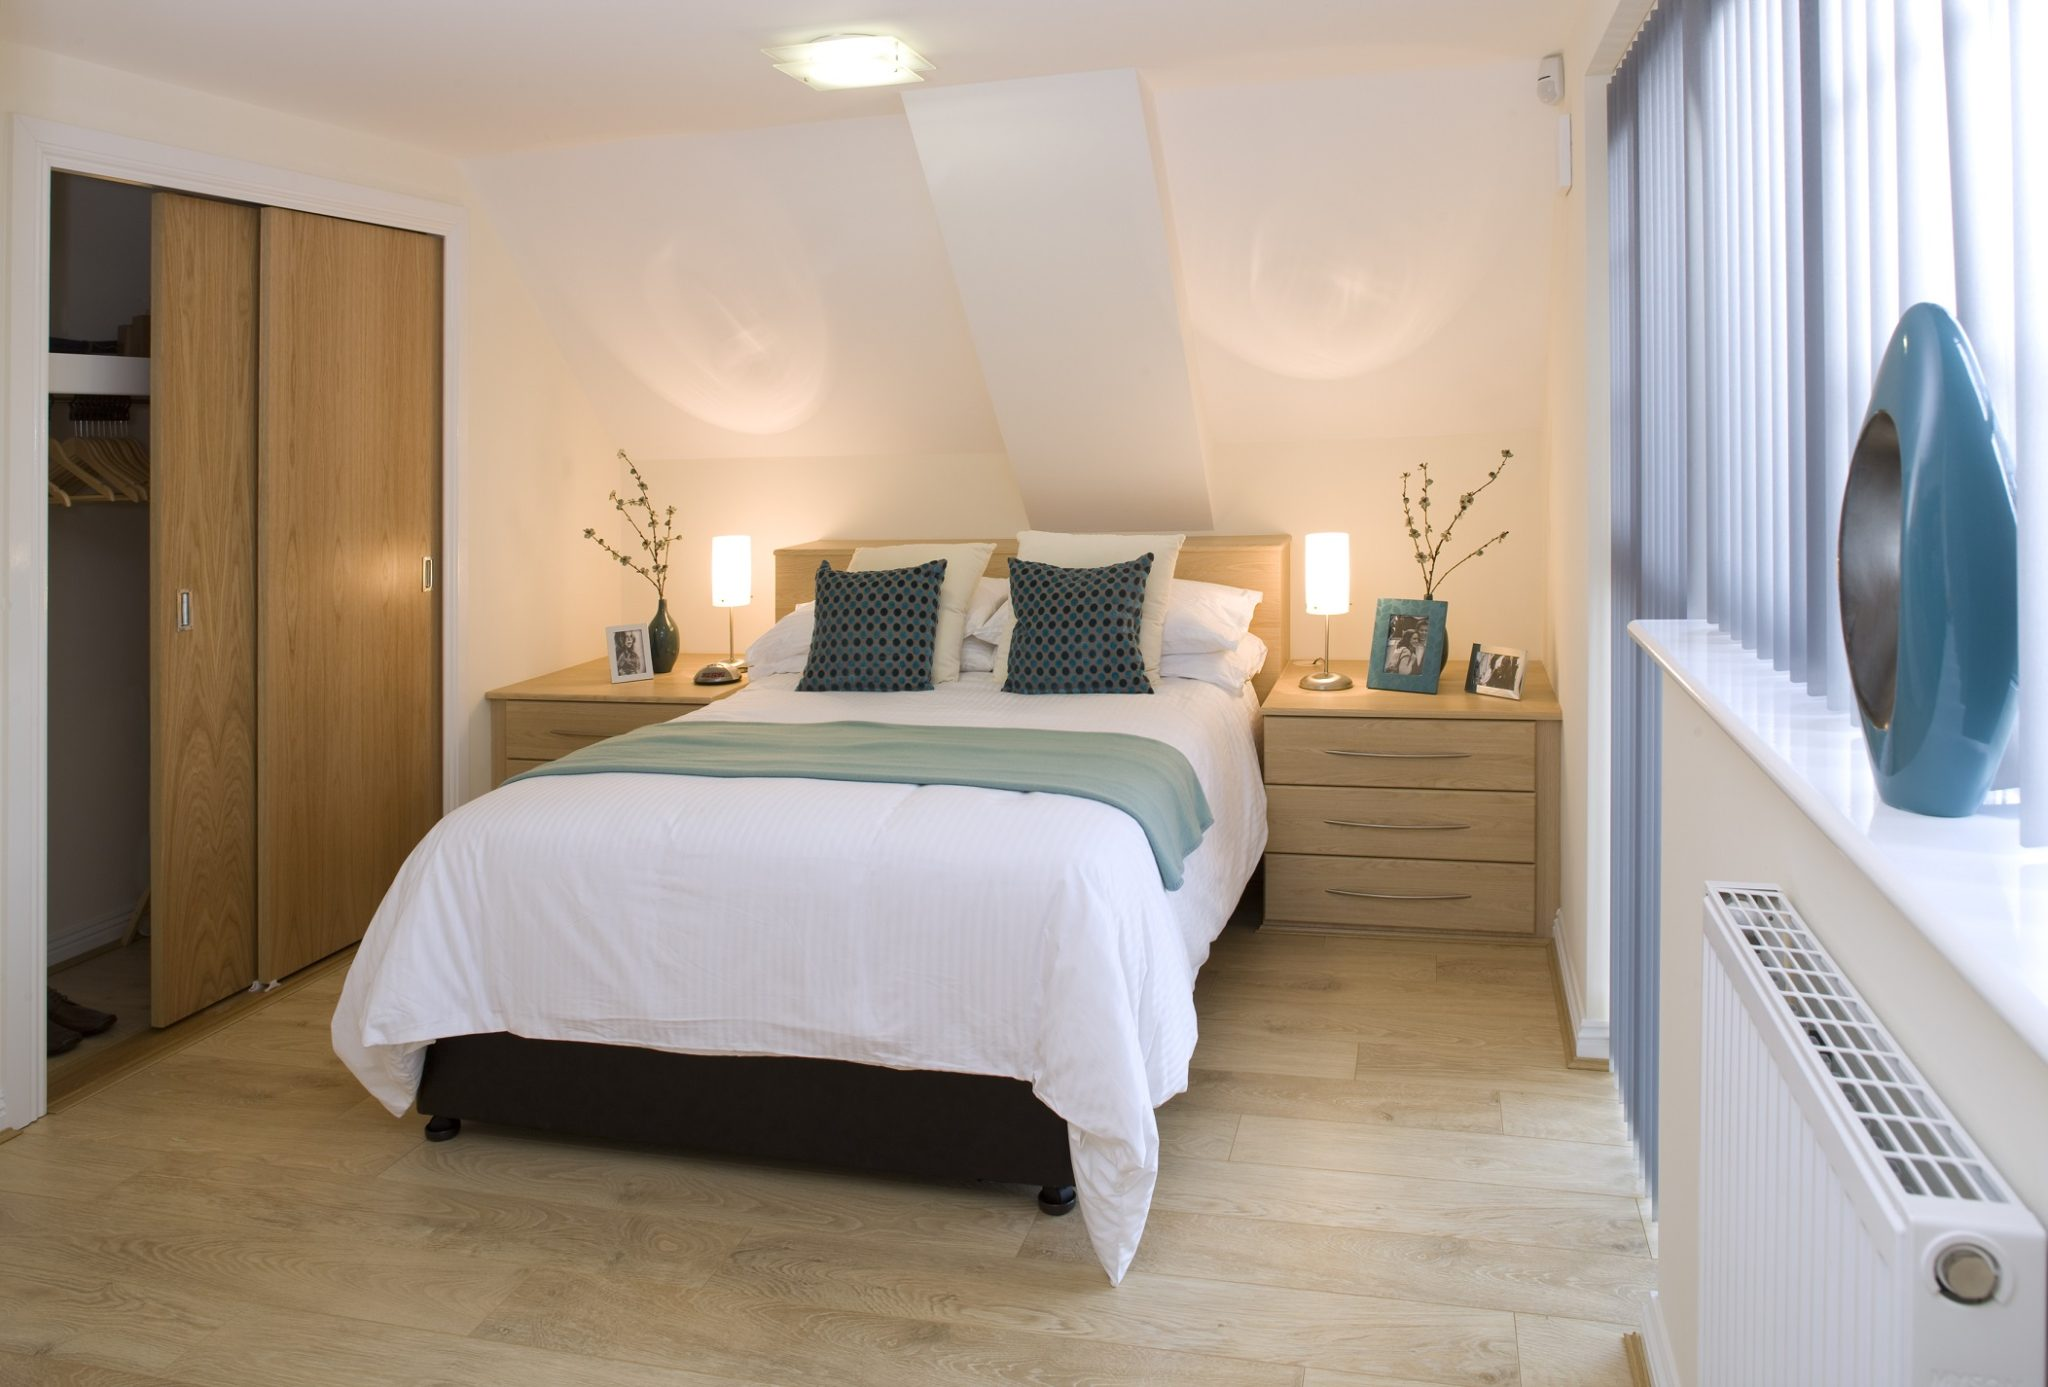 Cliddesden-Place-Short-Stay-Apartments-Basingstoke-UK-Bedroom-Wood-Floor